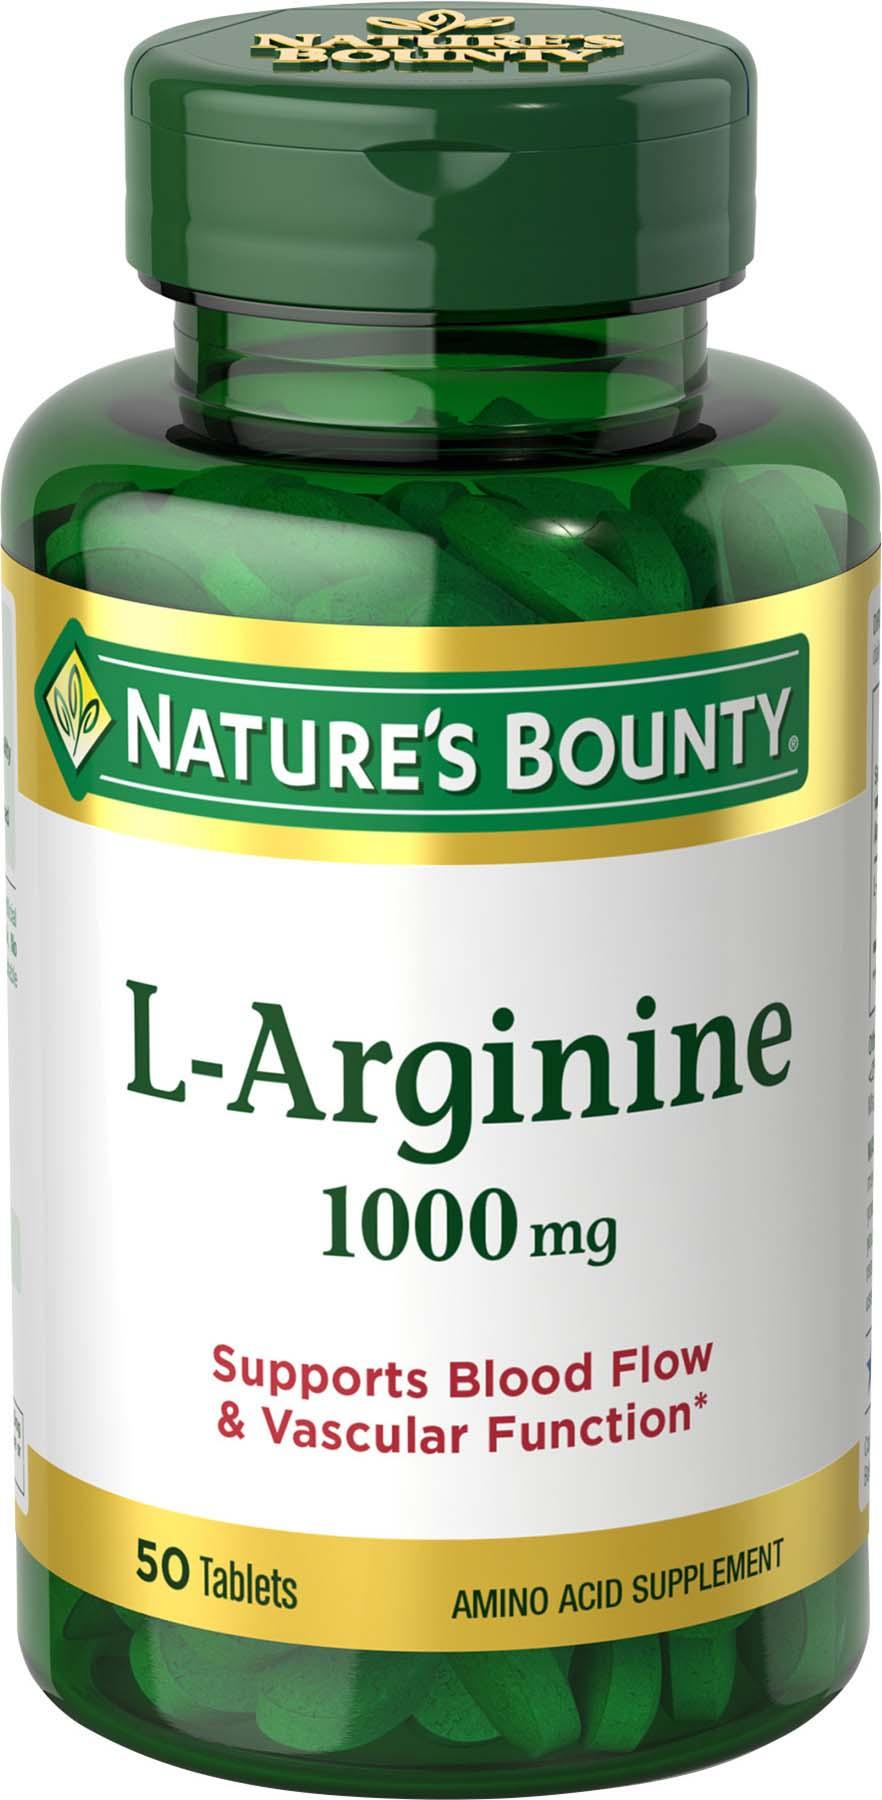 Amazon.com: Nature's Bounty L-Arginine 1000 mg, 50 Tablets ...